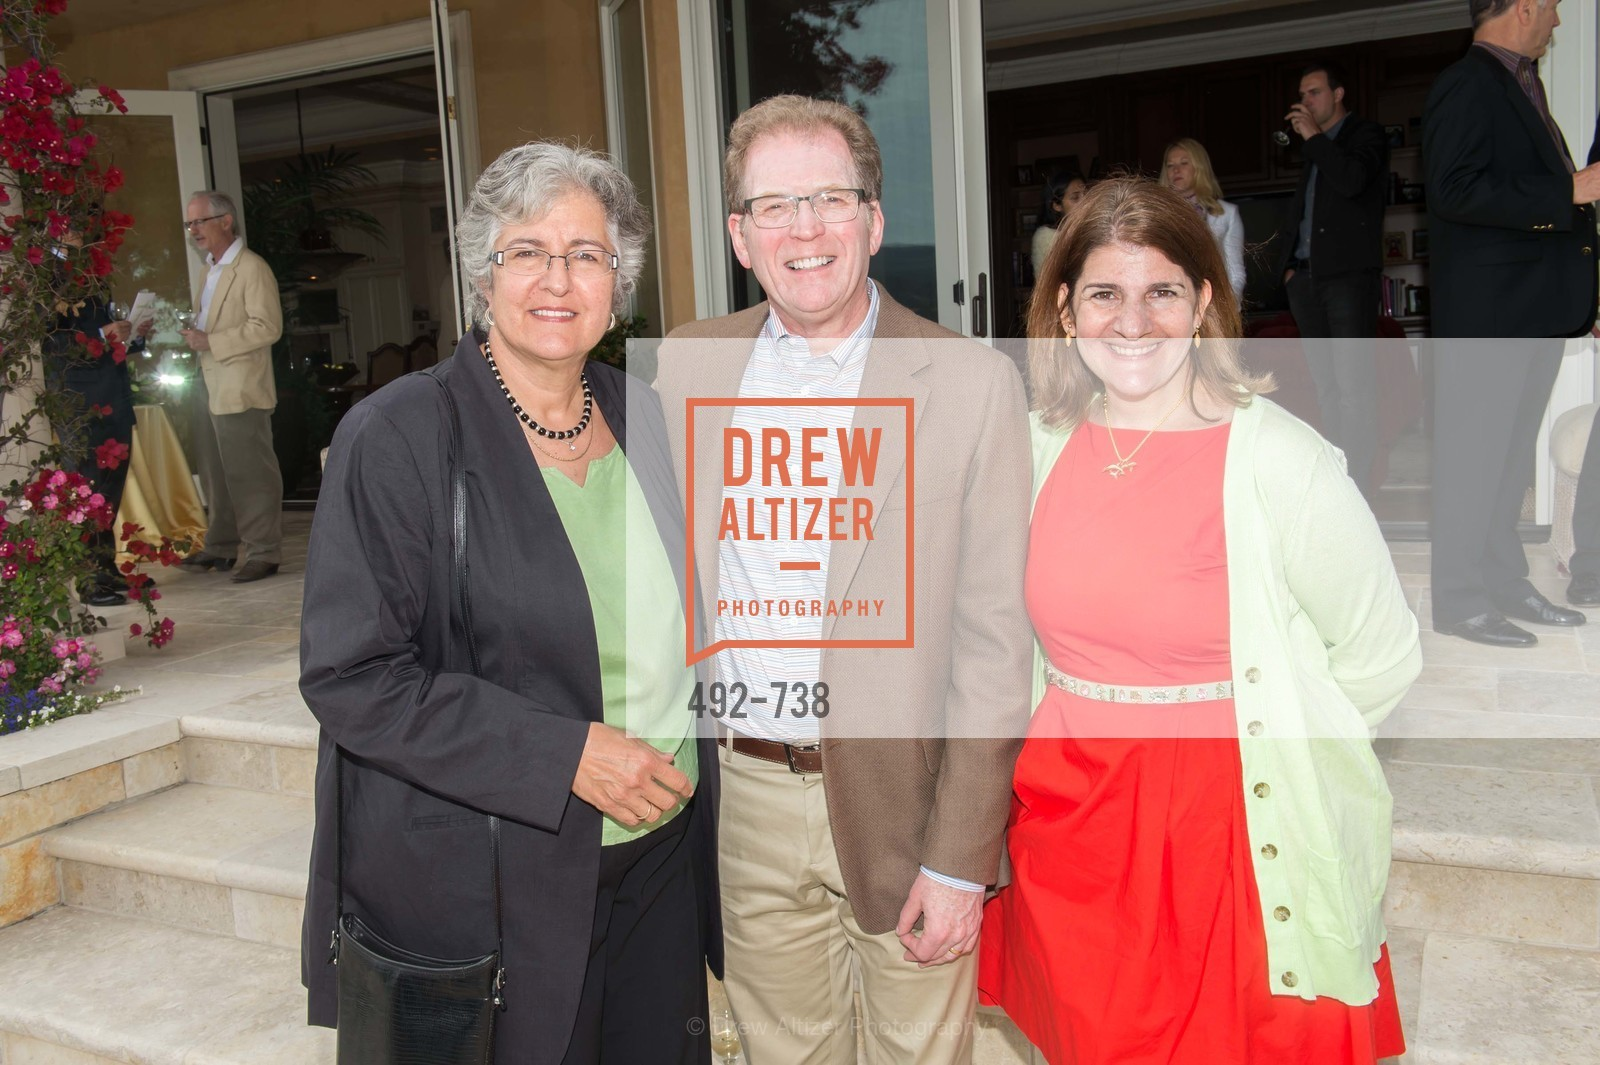 Lisa Keany, Lloyd Minor, Kerima Greene, LymeAid 2015, US, May 18th, 2015,Drew Altizer, Drew Altizer Photography, full-service agency, private events, San Francisco photographer, photographer california